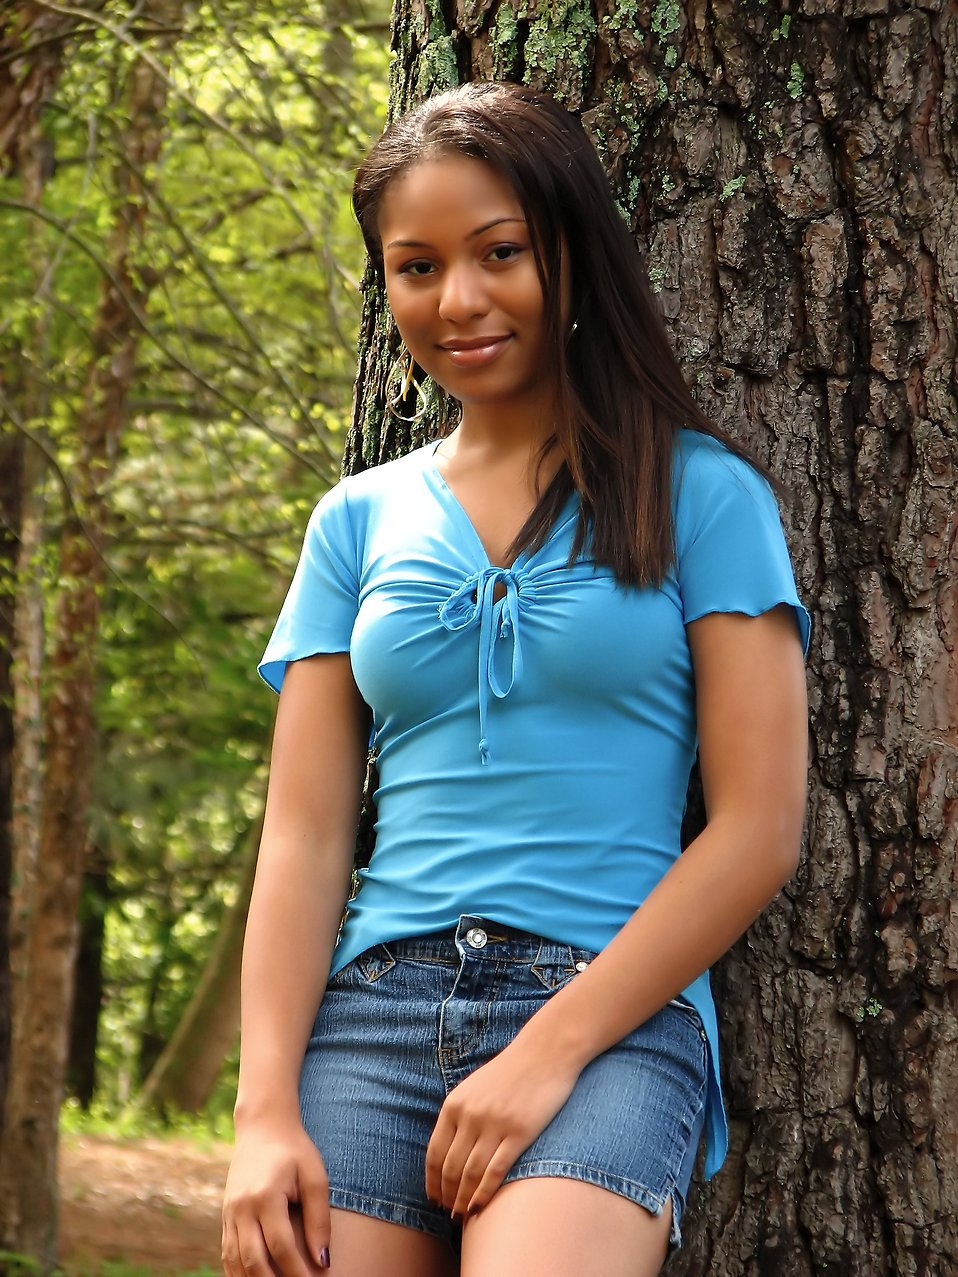 A beautiful African American teen girl posing against a tree in the woods : Free Stock Photo